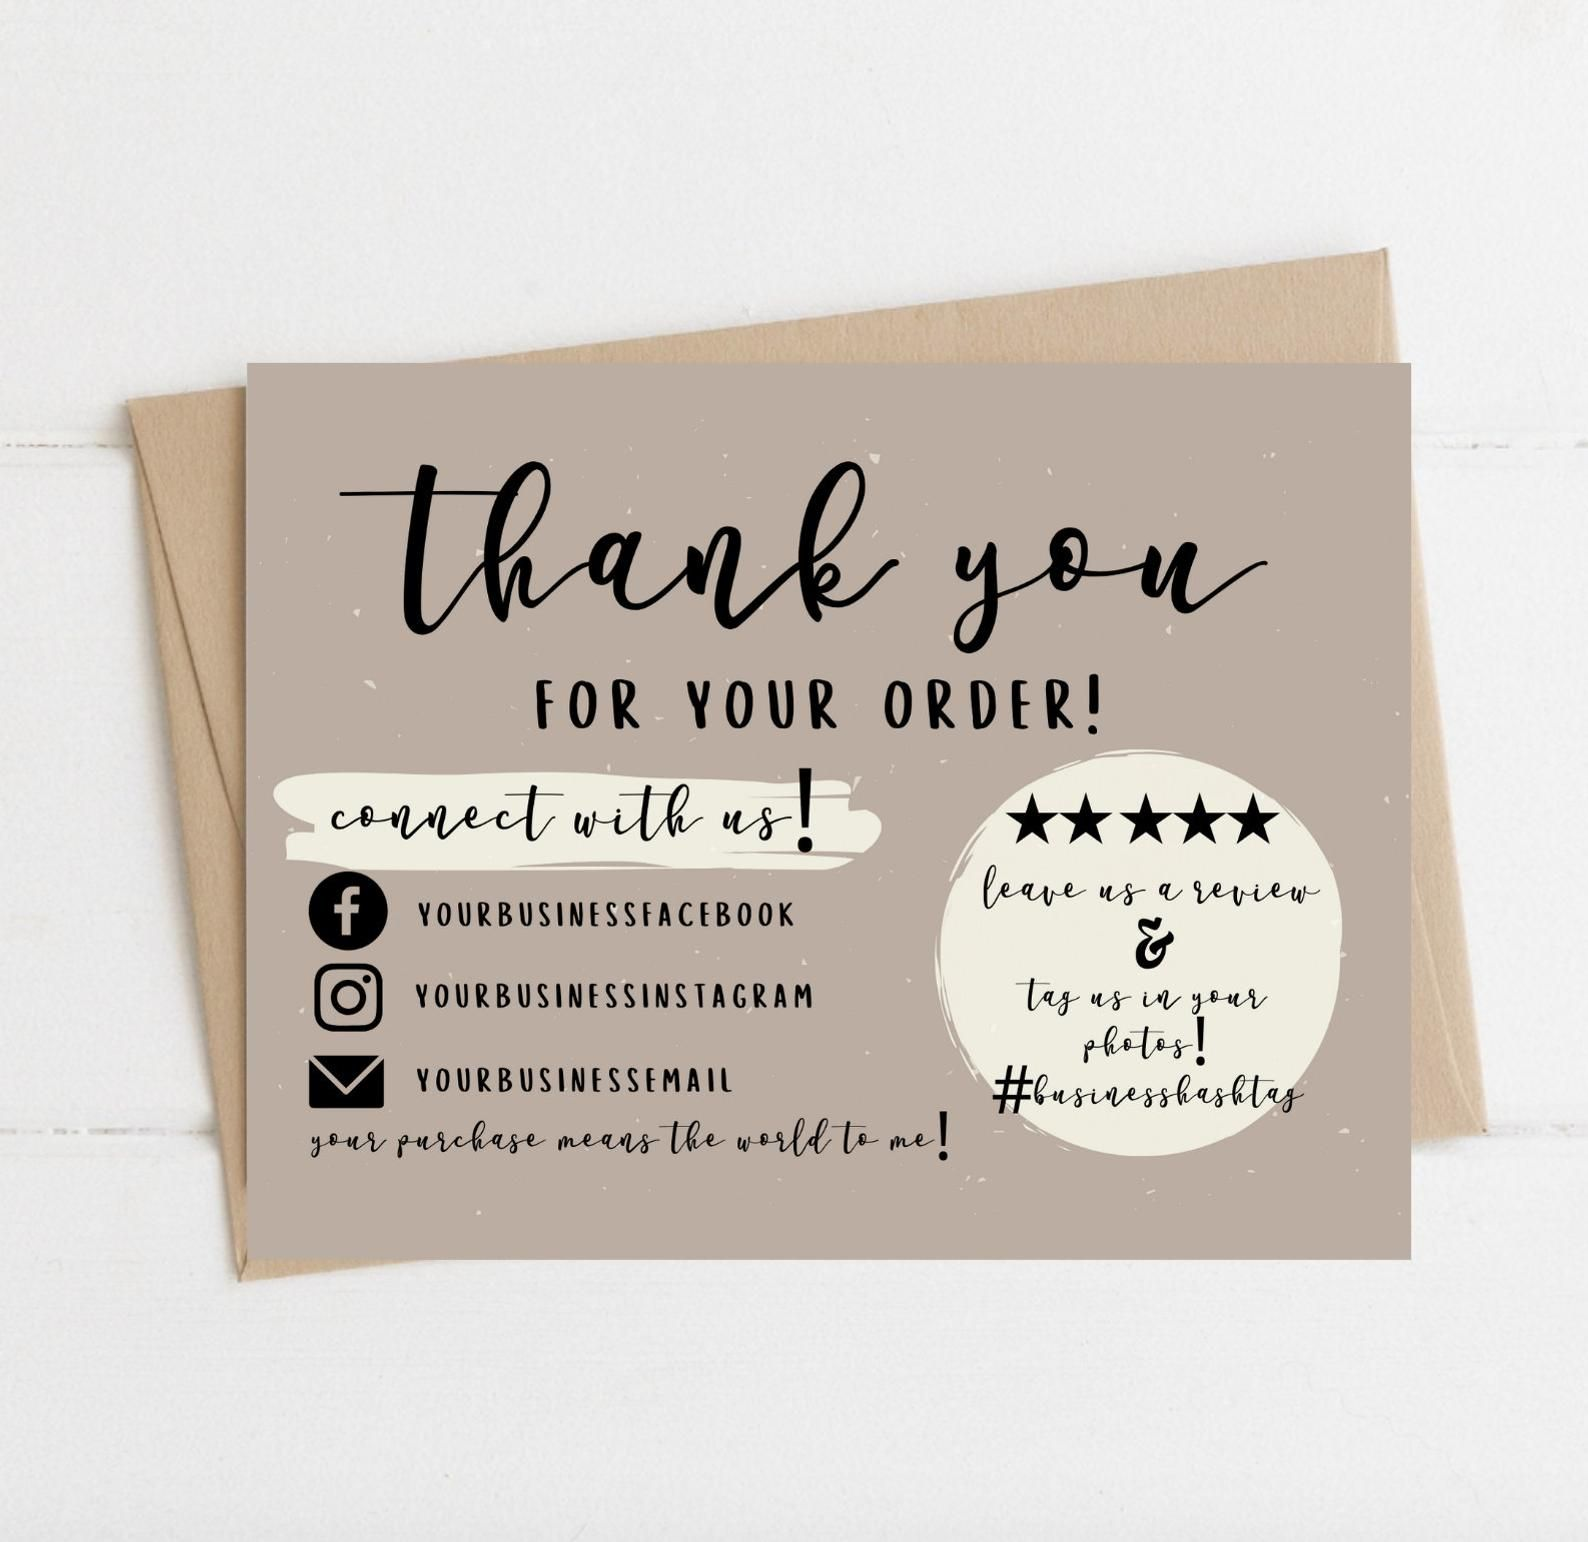 Instant Download Thank You Card Editable And Printable Thank You Cards Thank You Card For Business Simple Thank You Business Cards Small Business Cards Printable Thank You Cards Packaging Ideas Business